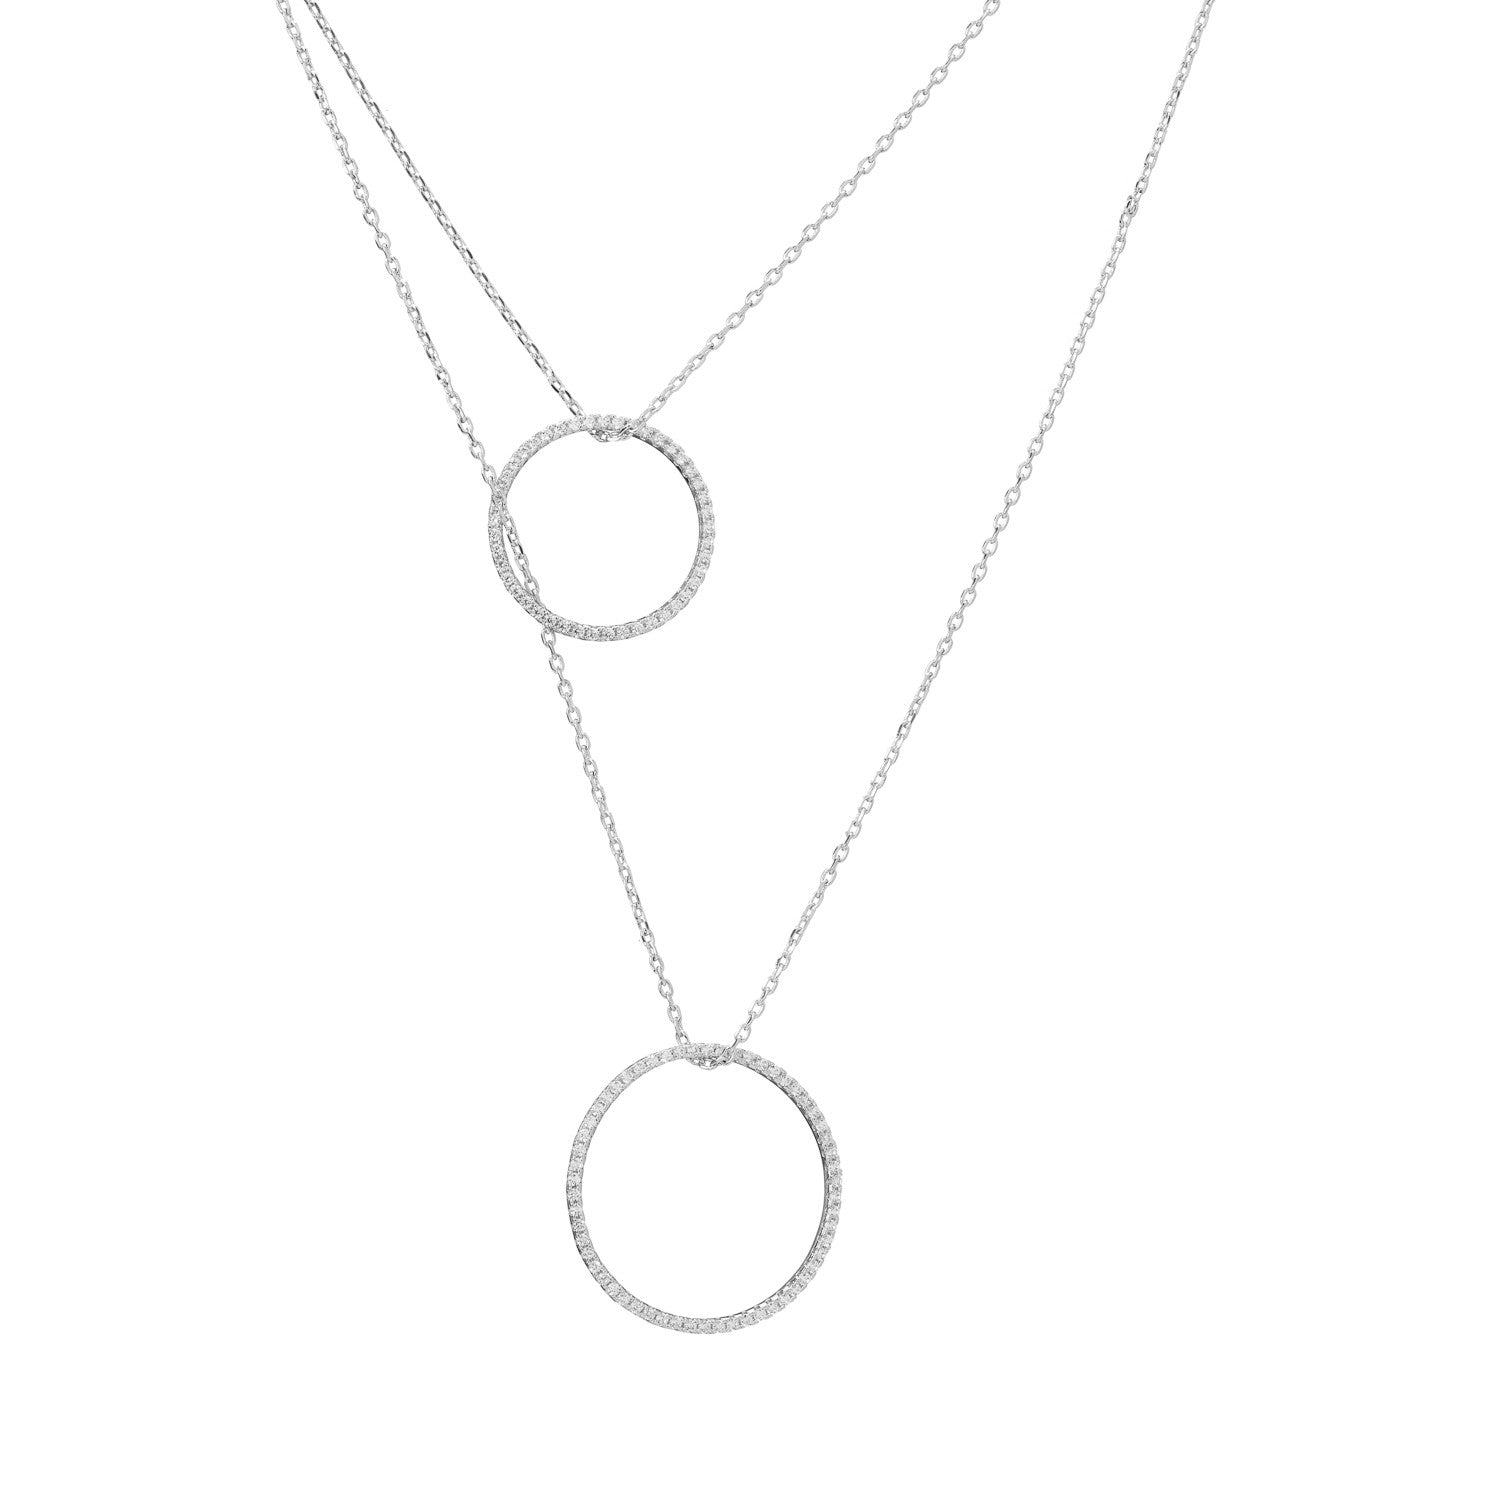 Friendship Circle Necklace